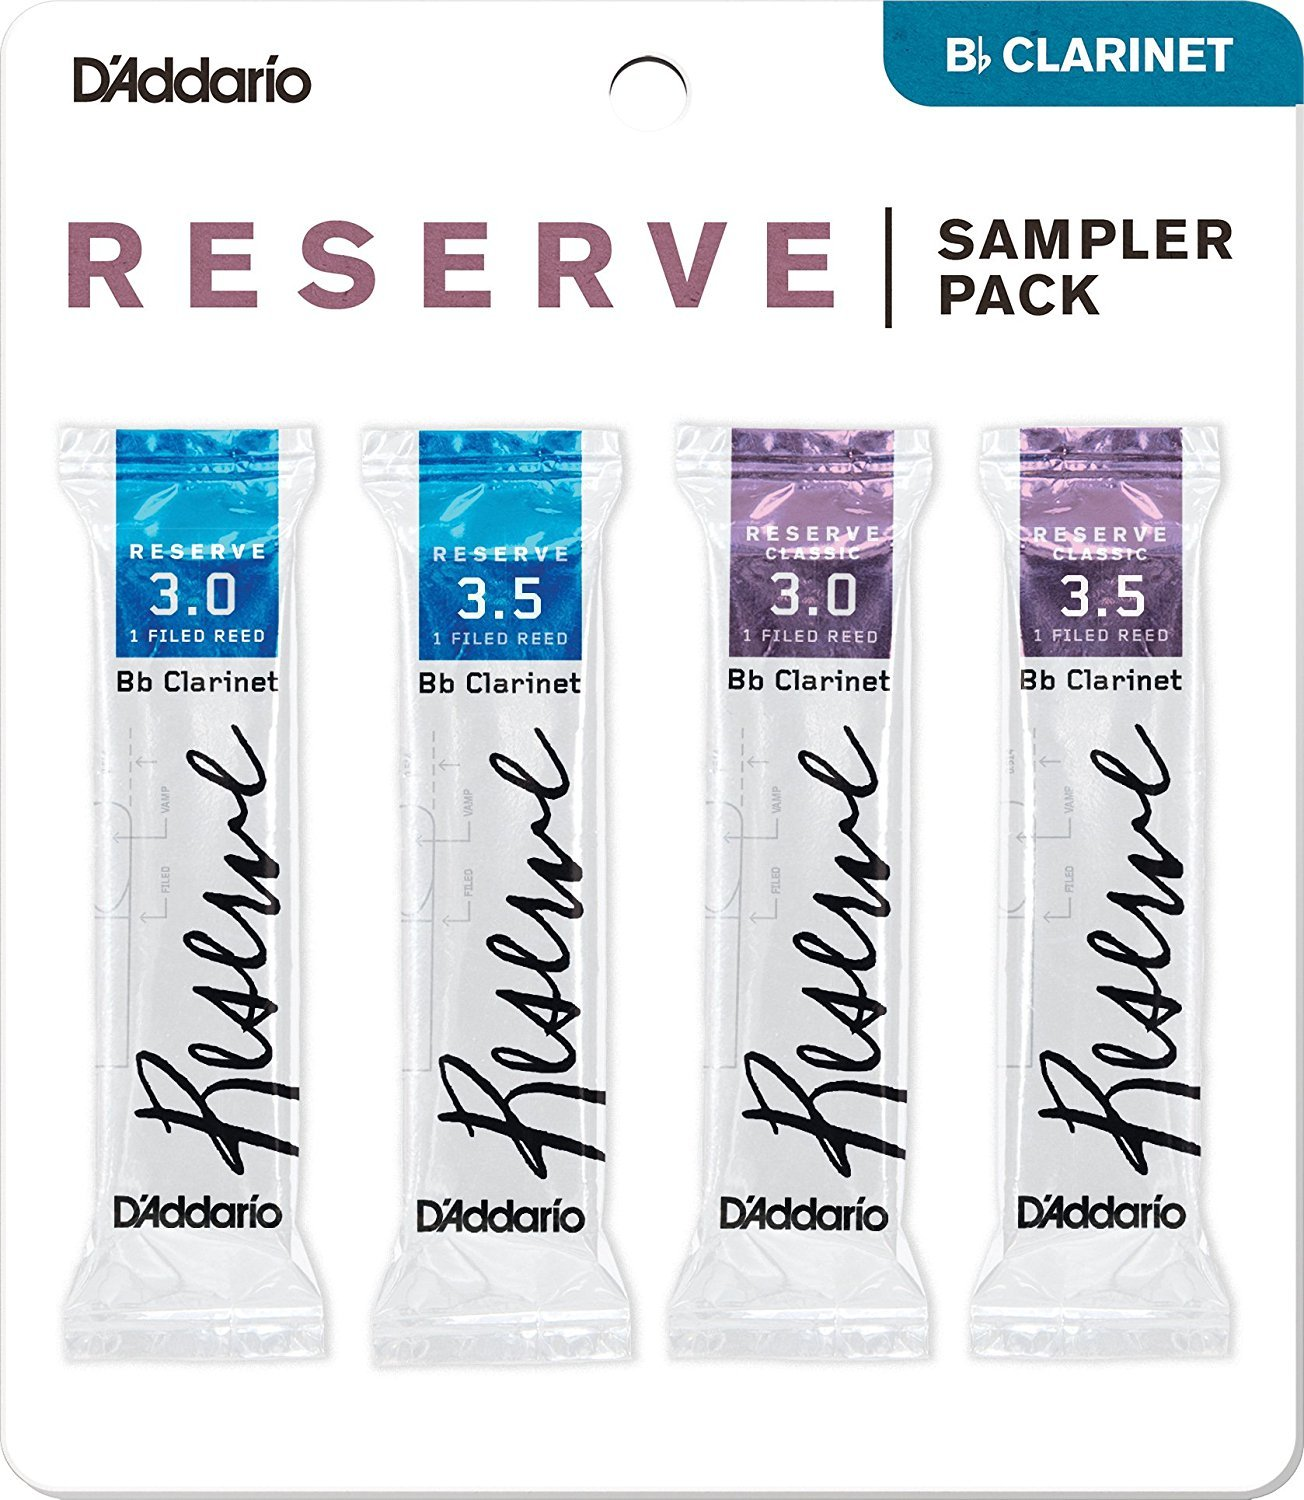 D'Addario Woodwinds DRS-C30 Reserve Bb Clarinet Reed Sampler Pack, 3.0/3.5